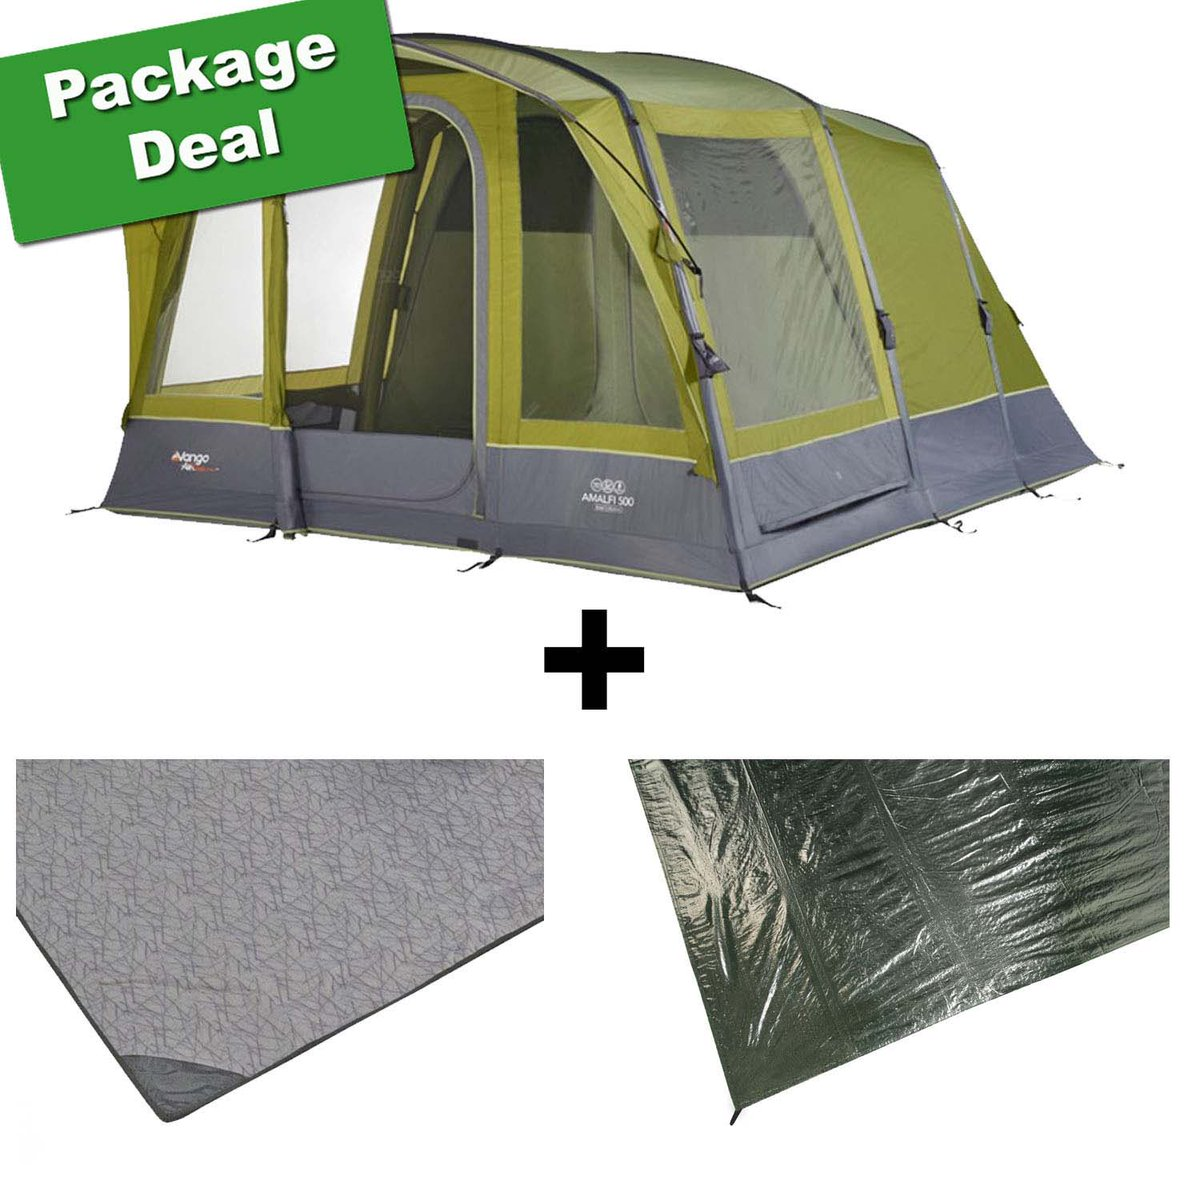 ... easy to put up inflatable tent then look no further the Vango Amalfi 500 is perfect for the weekends or short break holiday.  sc 1 st  Twitter & Outdoor Action Ltd on Twitter: